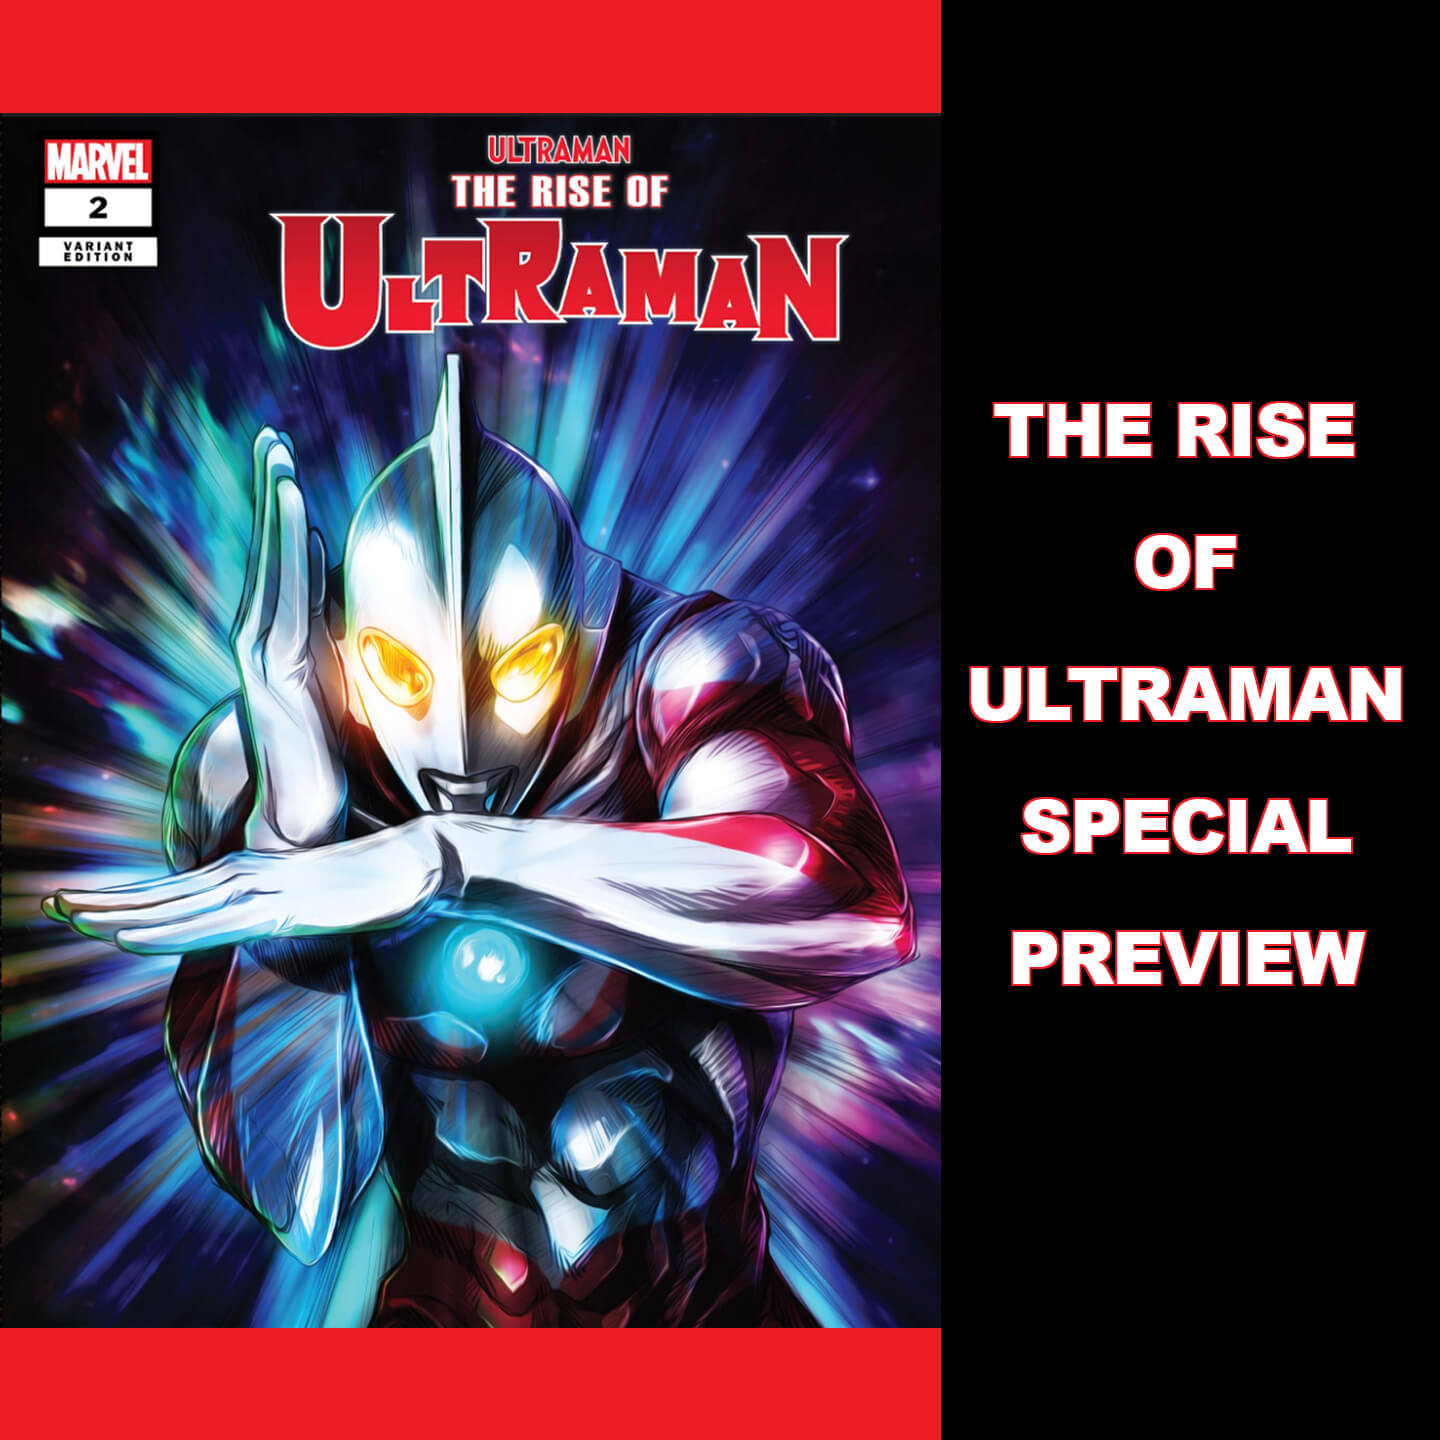 MARVEL RISE OF ULTRAMAN SPECIAL PREVIEW